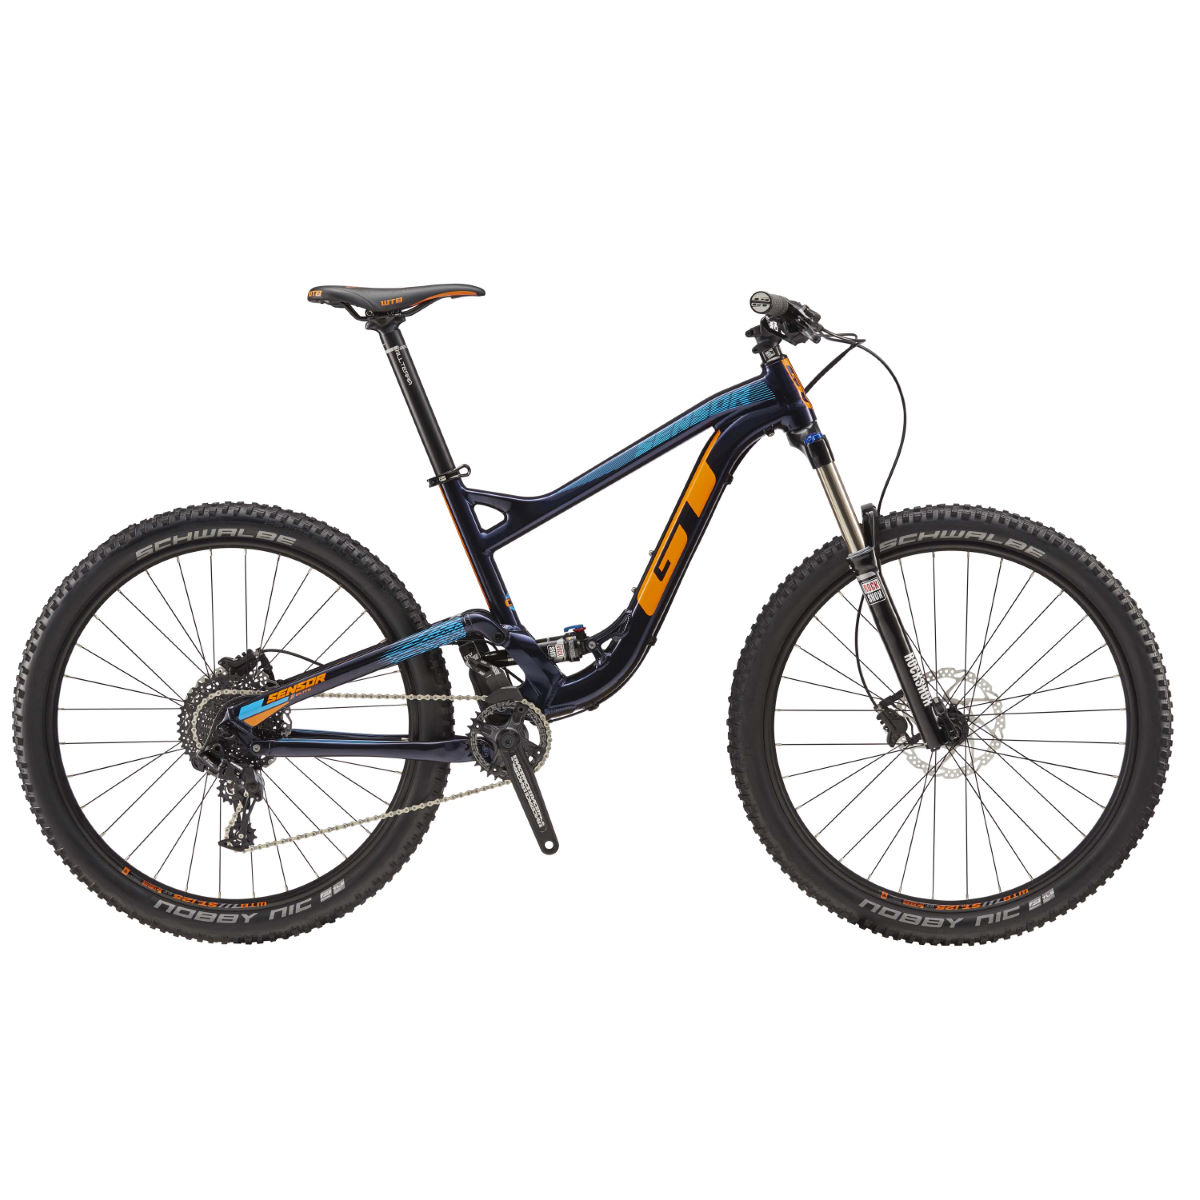 GT Sensor AL Elite (2017) Mountain Bike   Full Suspension Mountain Bikes